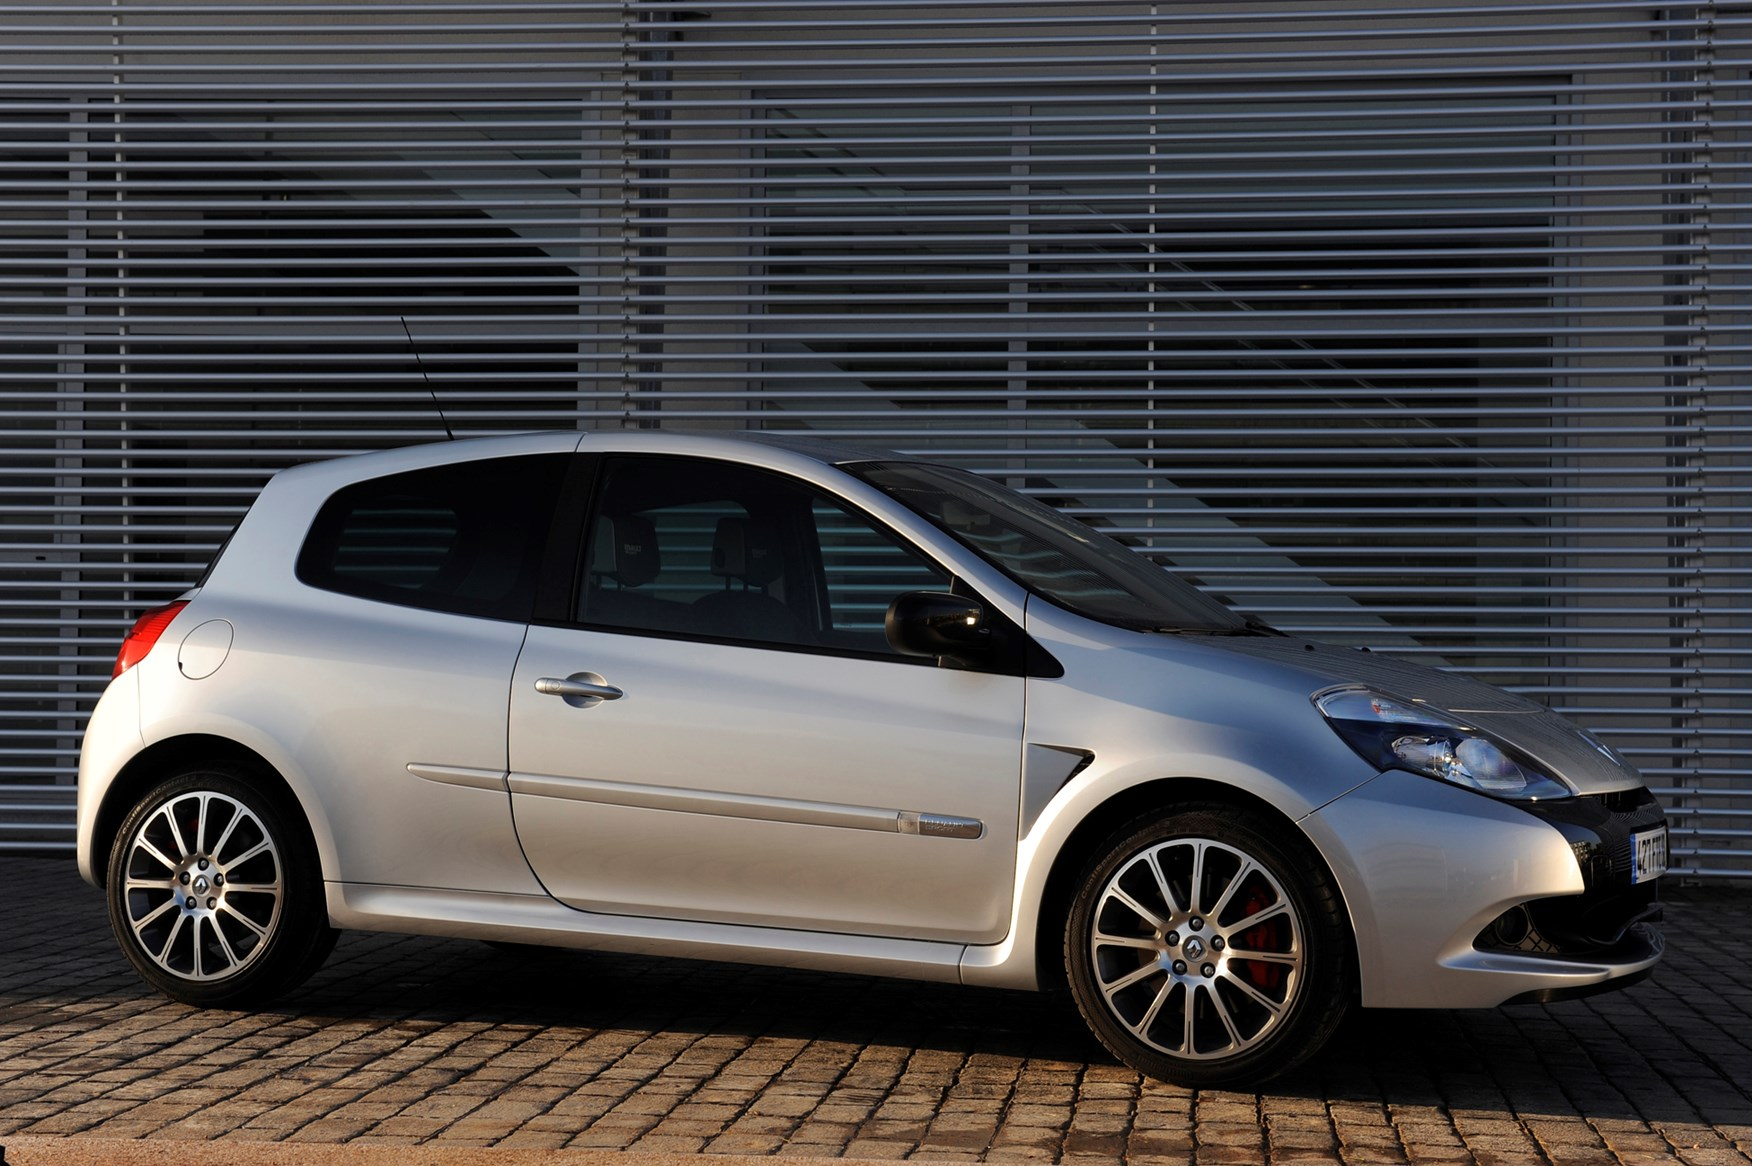 renault clio renaultsport 2006 2012 photos parkers. Black Bedroom Furniture Sets. Home Design Ideas